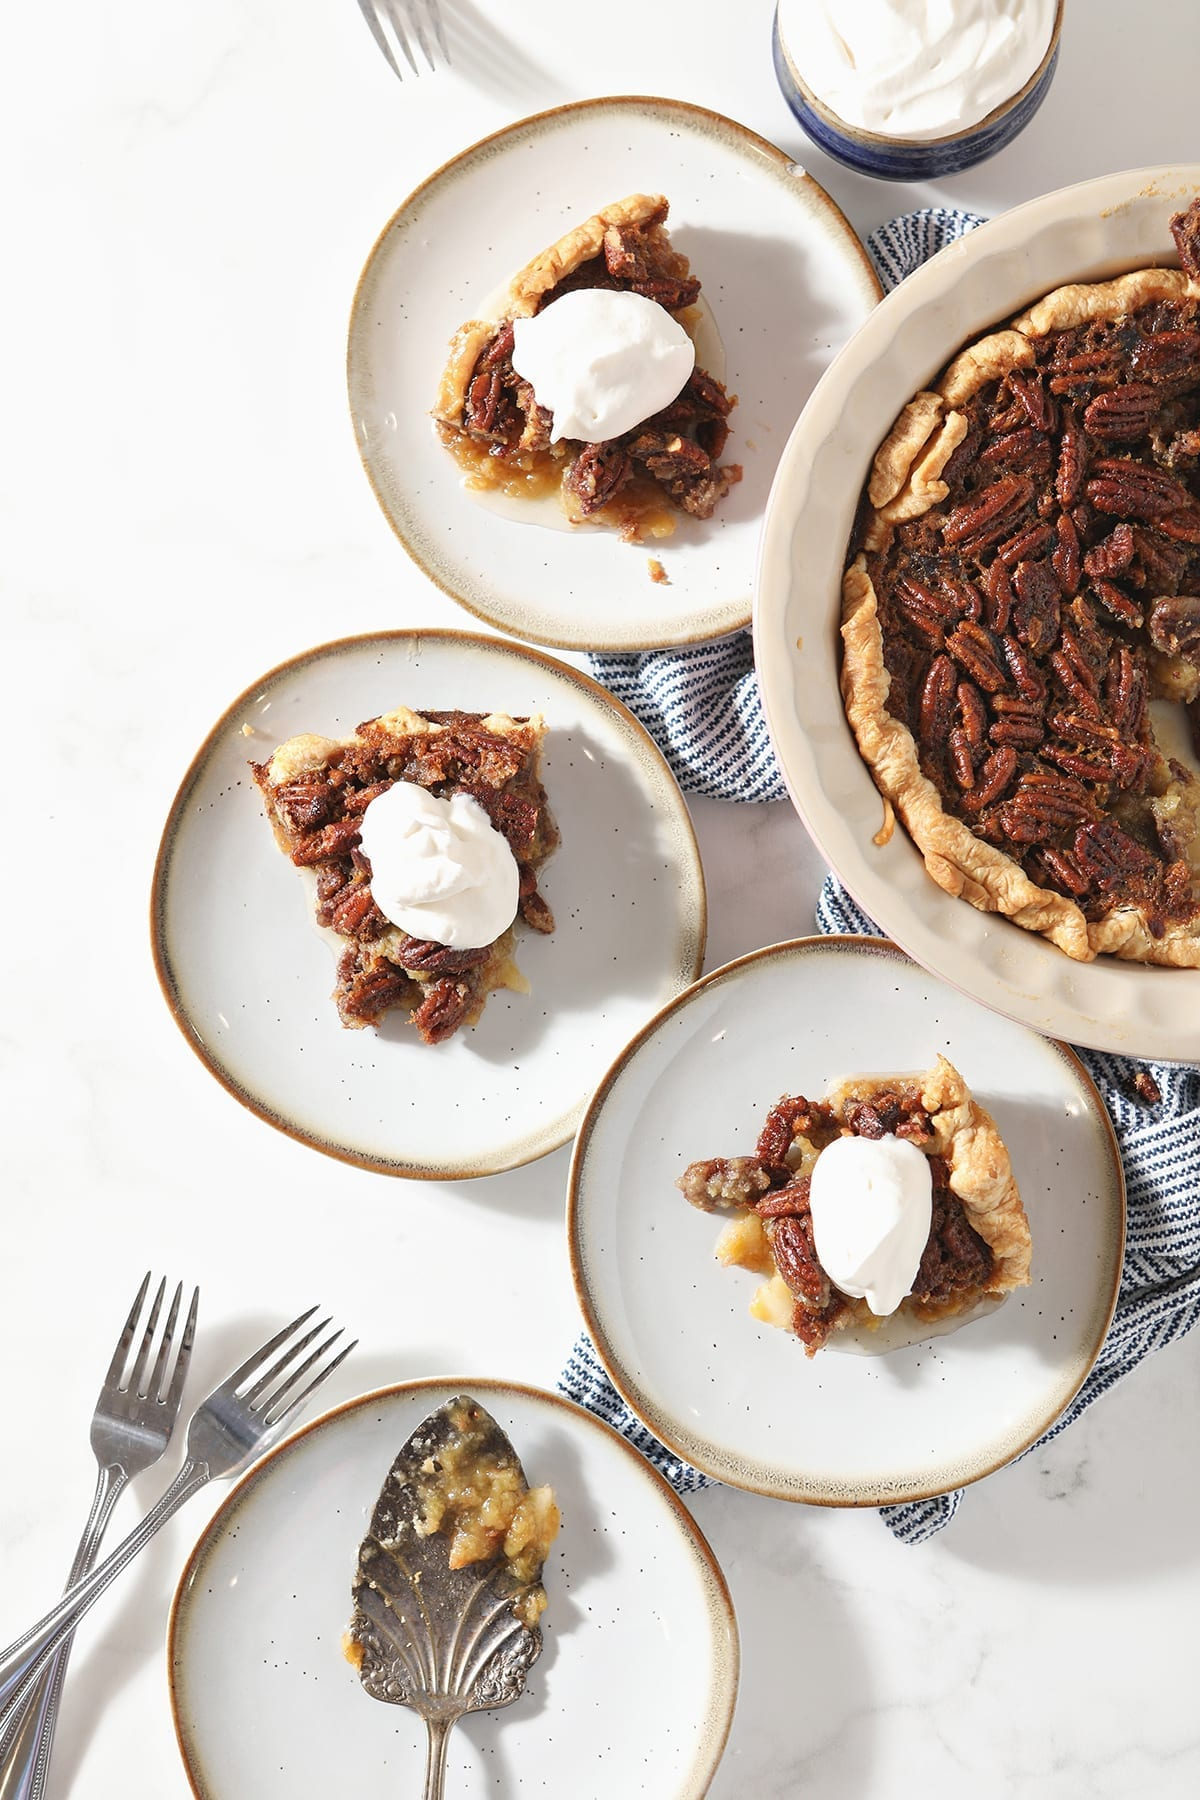 Three slices of Bourbon Pecan Pie sit on white plates next to the rest of the pie, a bowl of whipped cream and a plate holding the serving fork